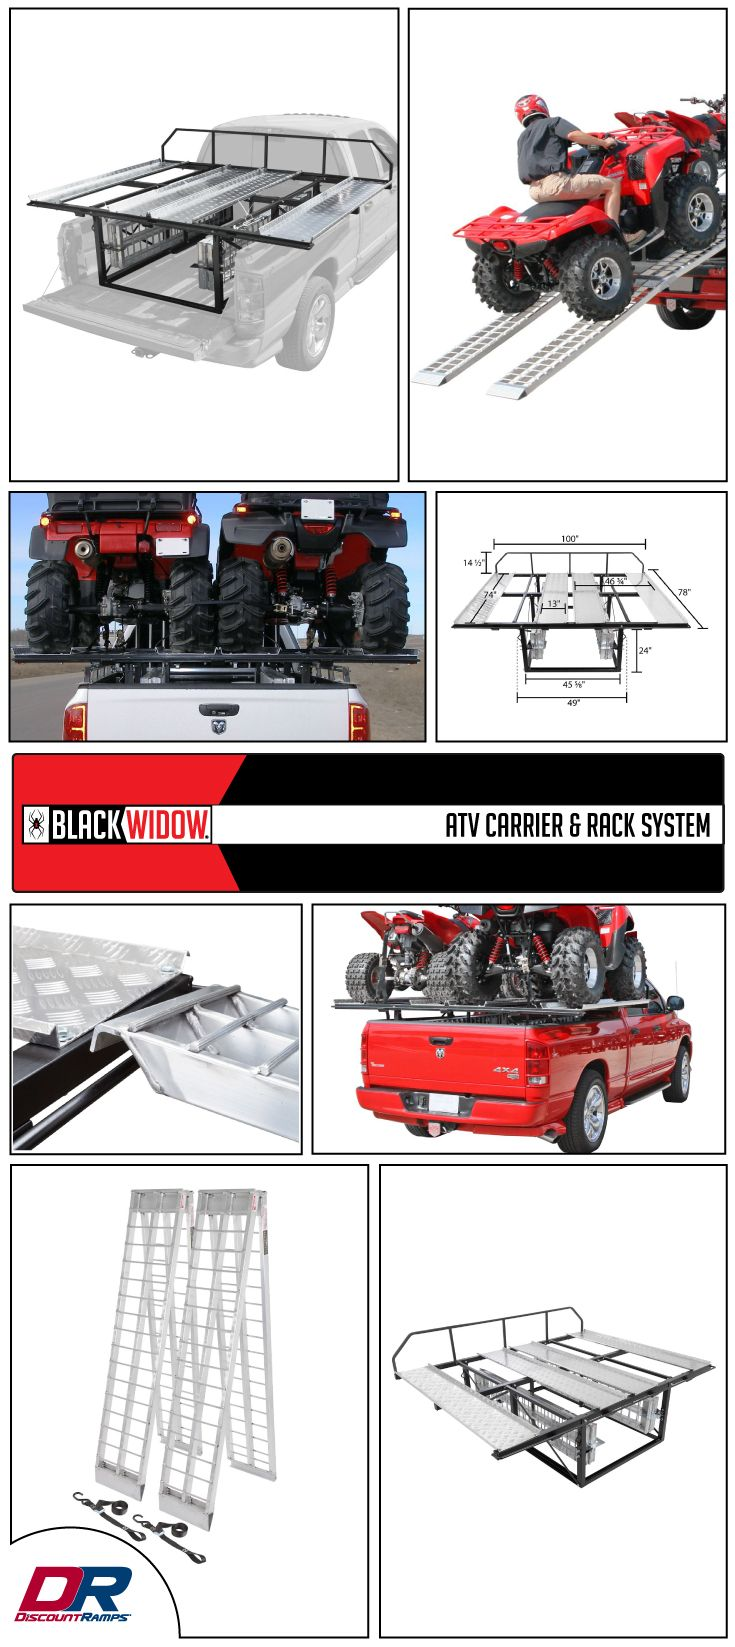 Black Widow ATV Carrier & Rack System 2,000 lbs